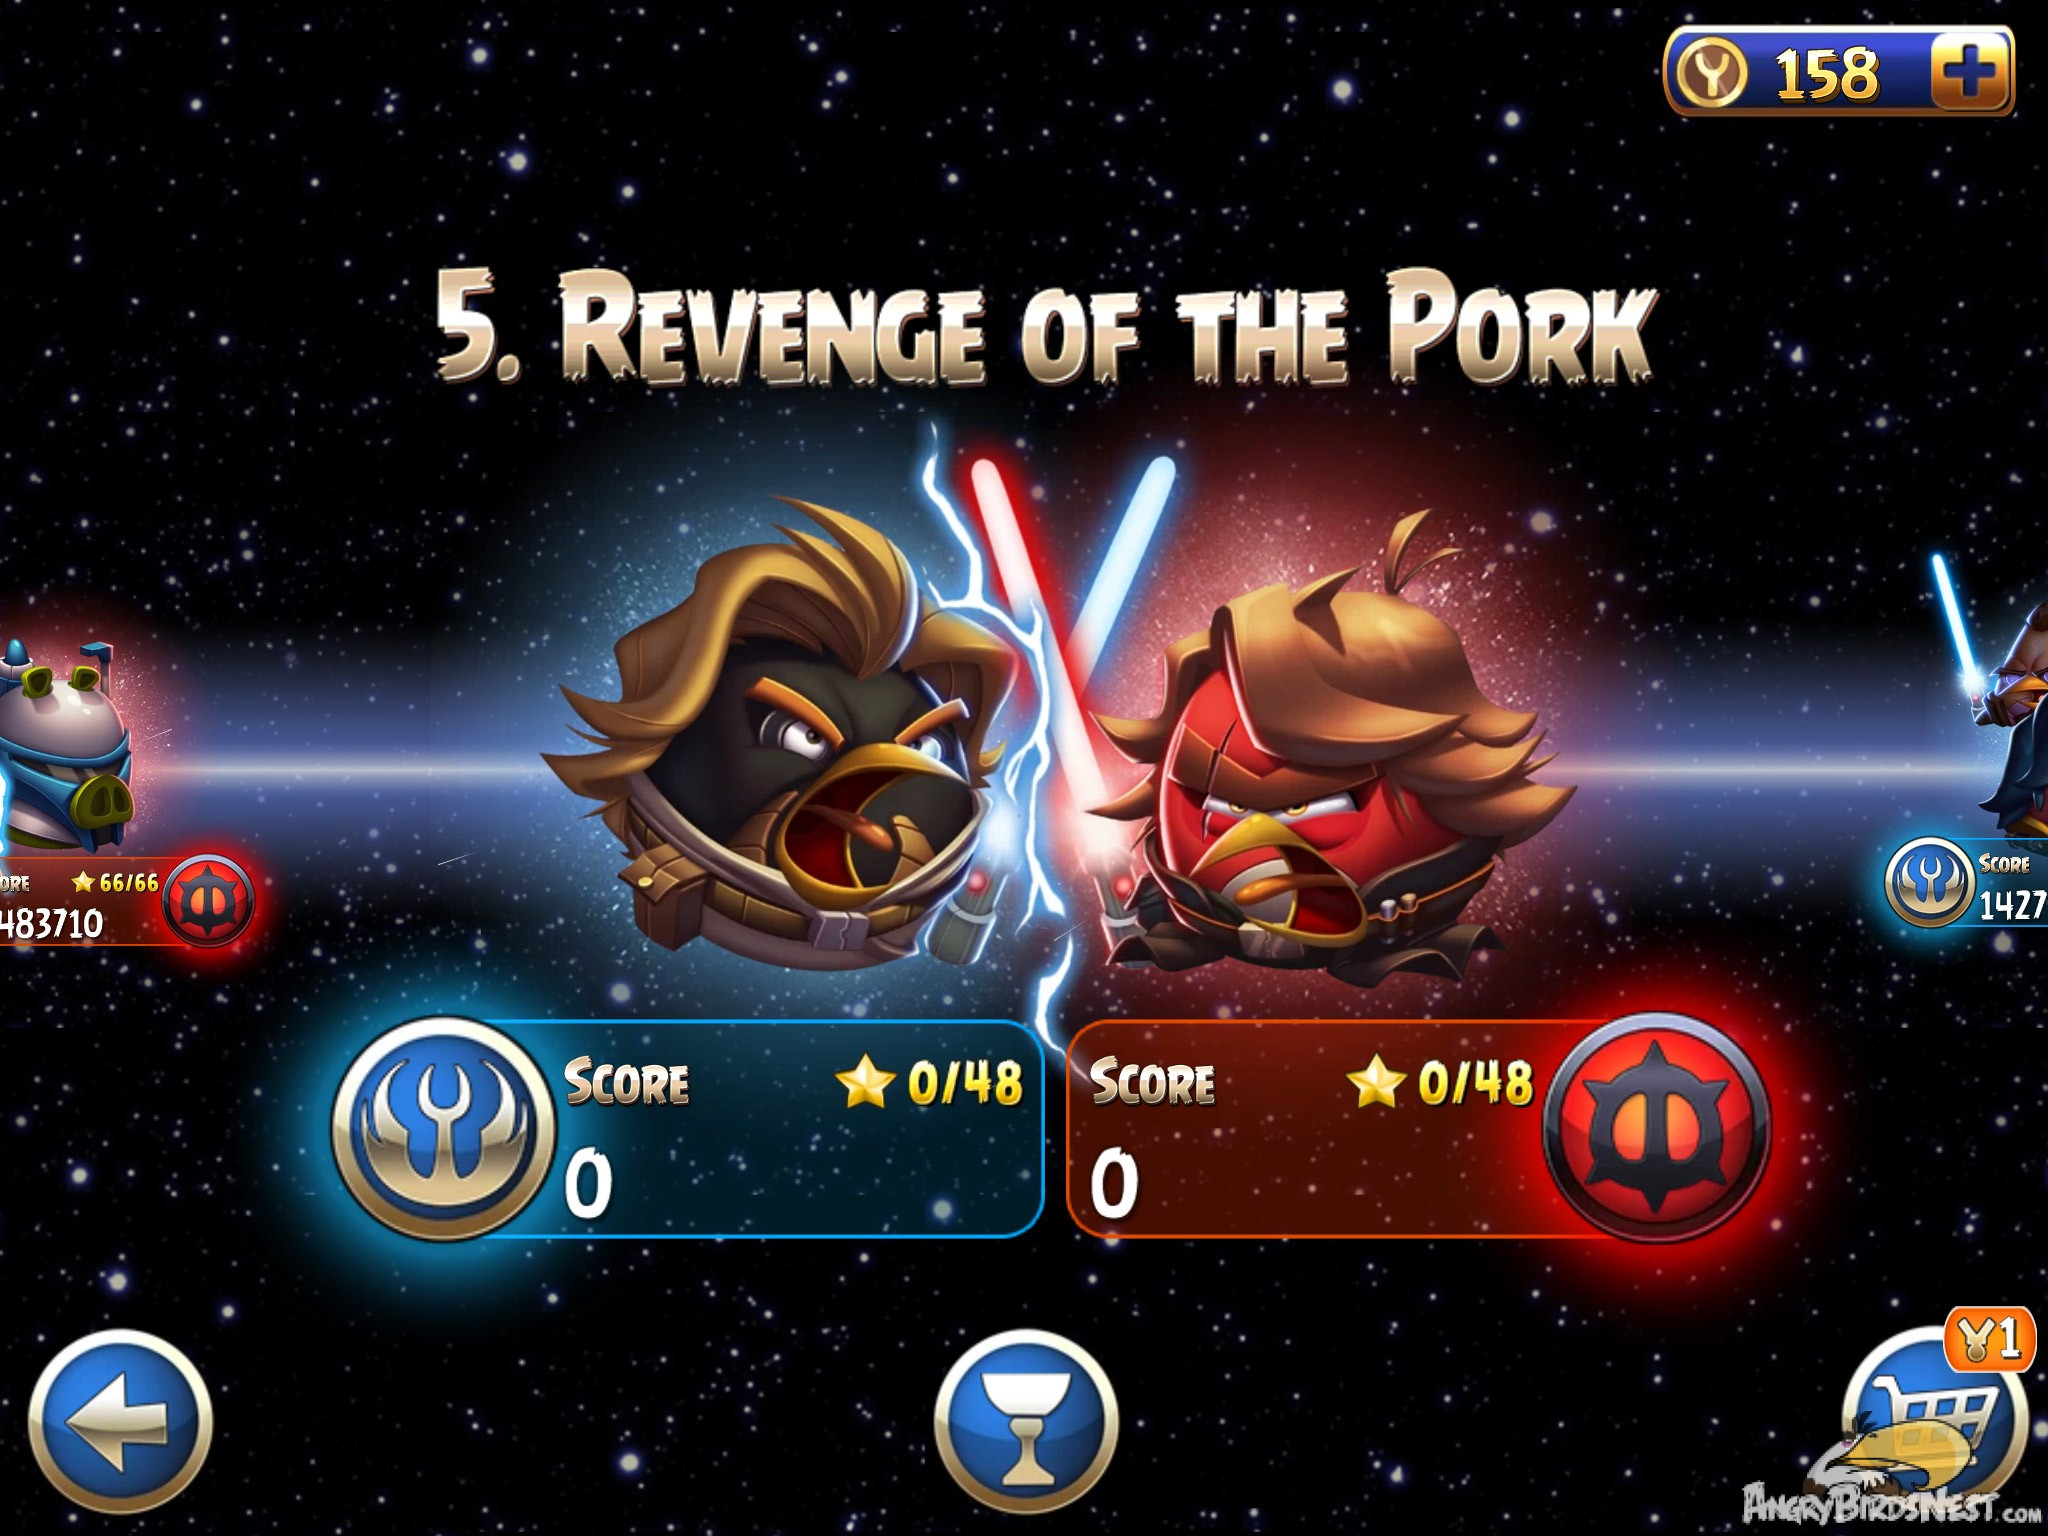 Angry Birds Star Wars 2 Revenge of the Pork Update Out Now for iOS